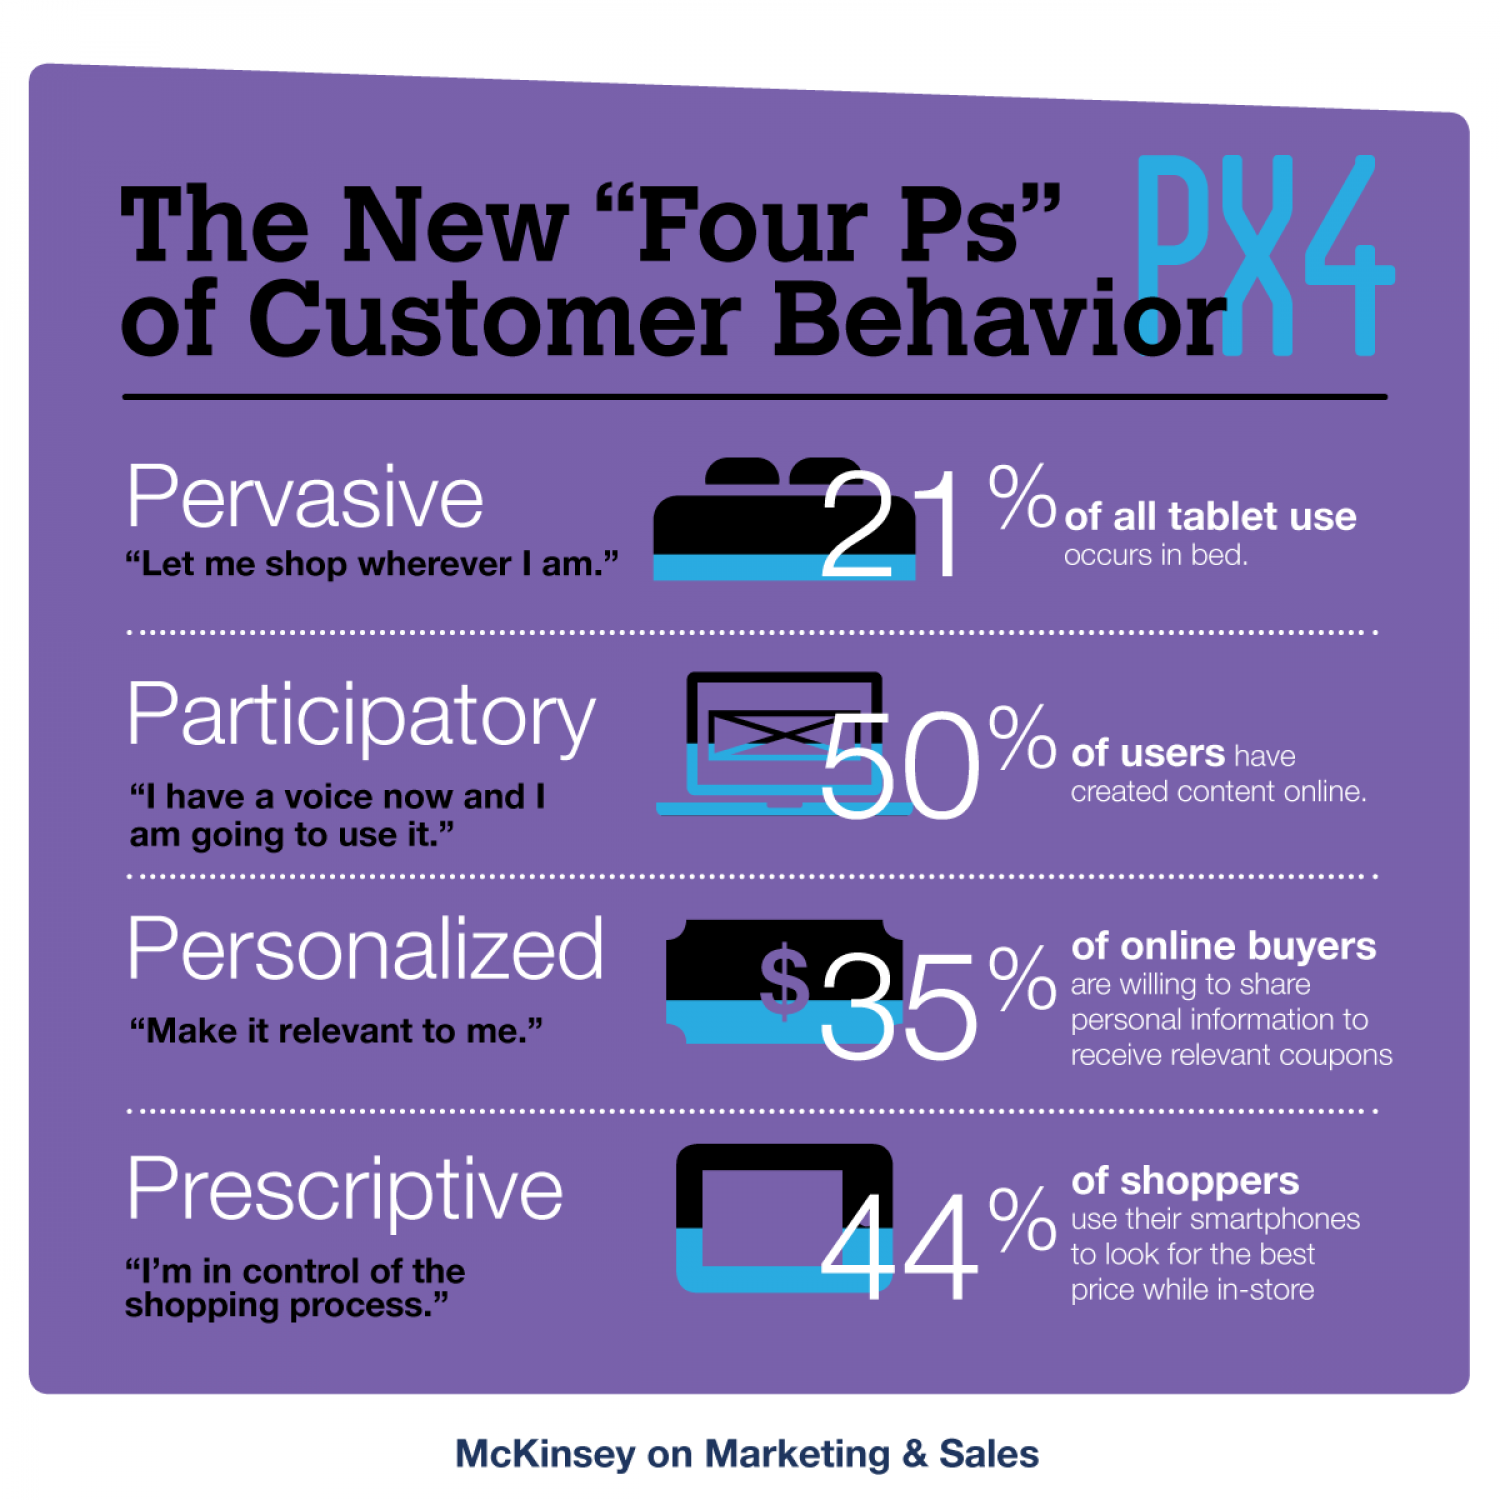 The New Four Ps of Customer Behavior Infographic